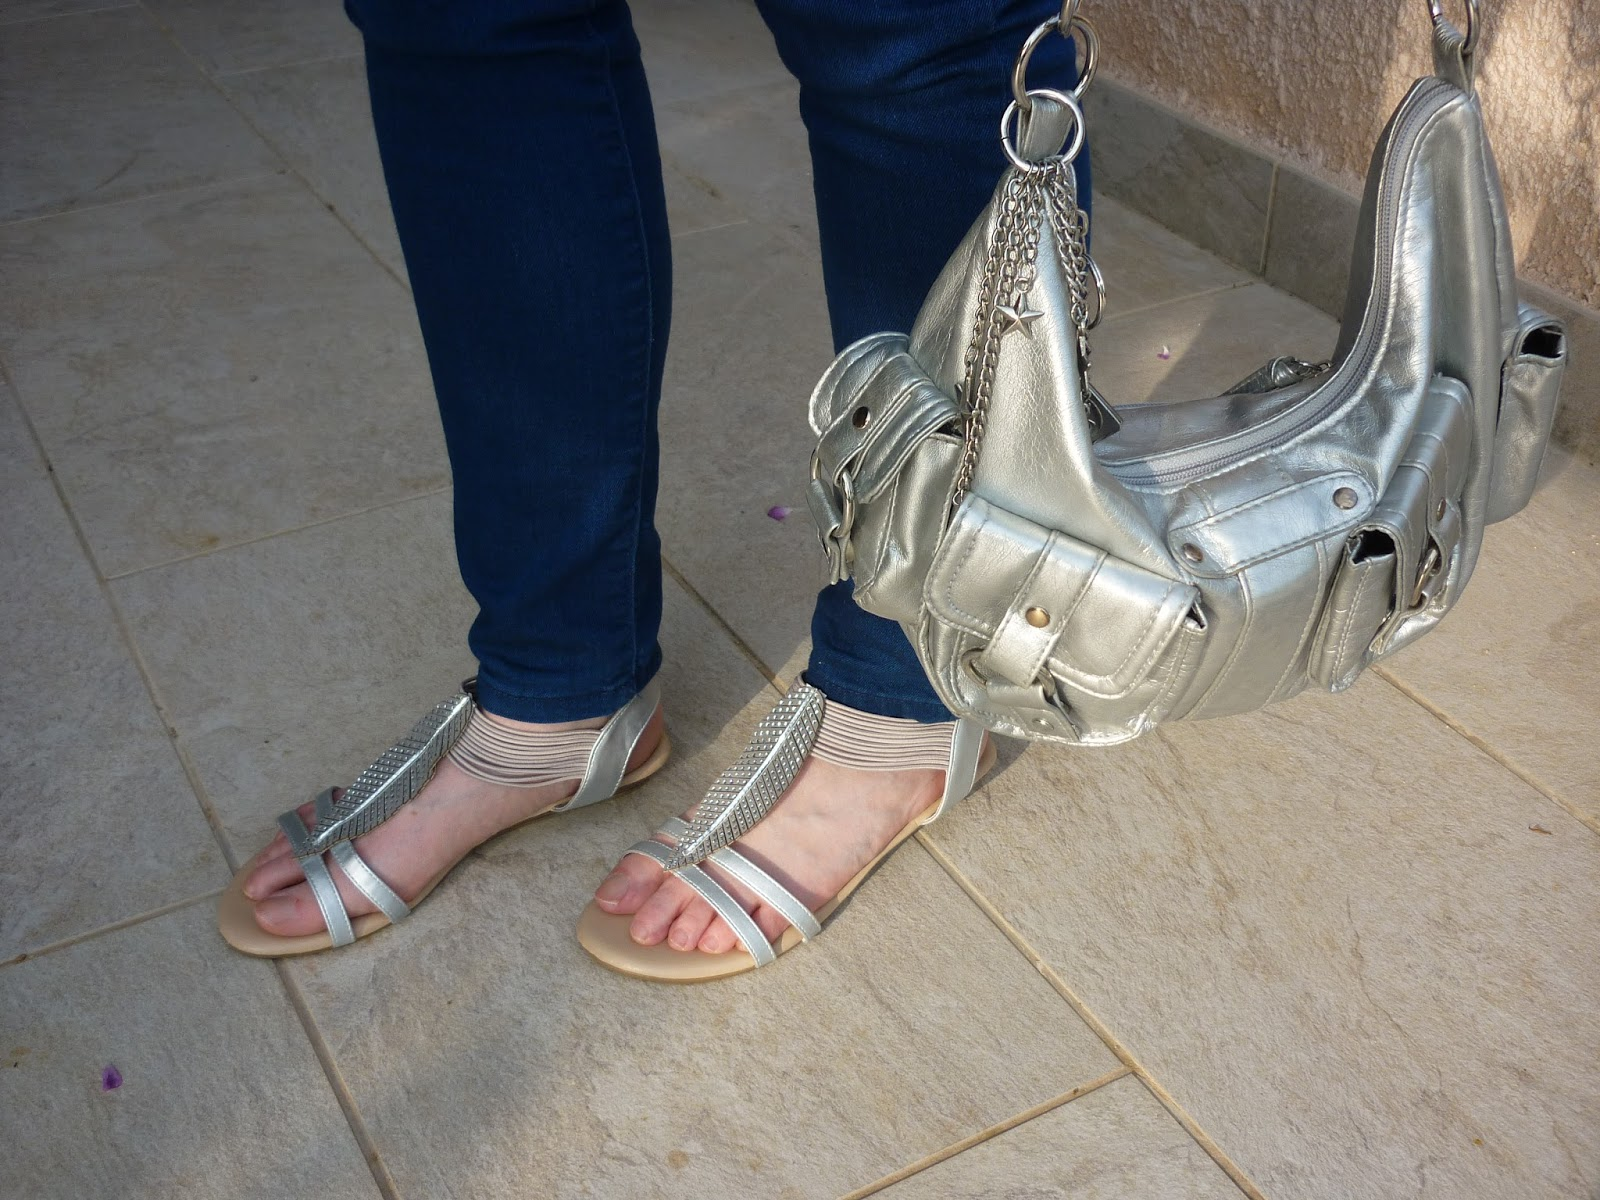 Silver Sandals and silver bag